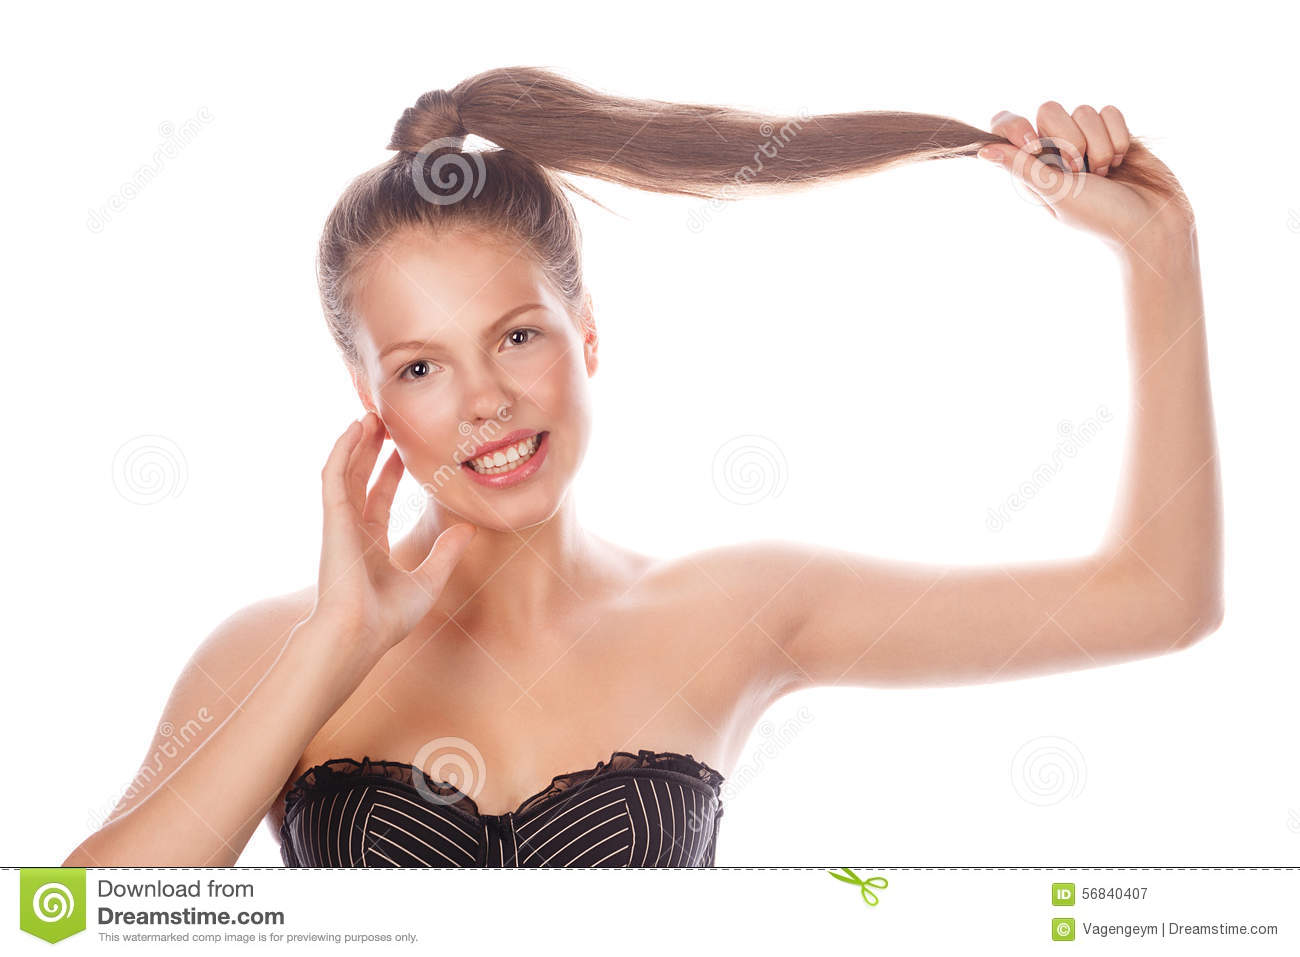 Puperty ) nude Teen Girl with nude makeup is holding her hair. Royalty Free Stock  Photography